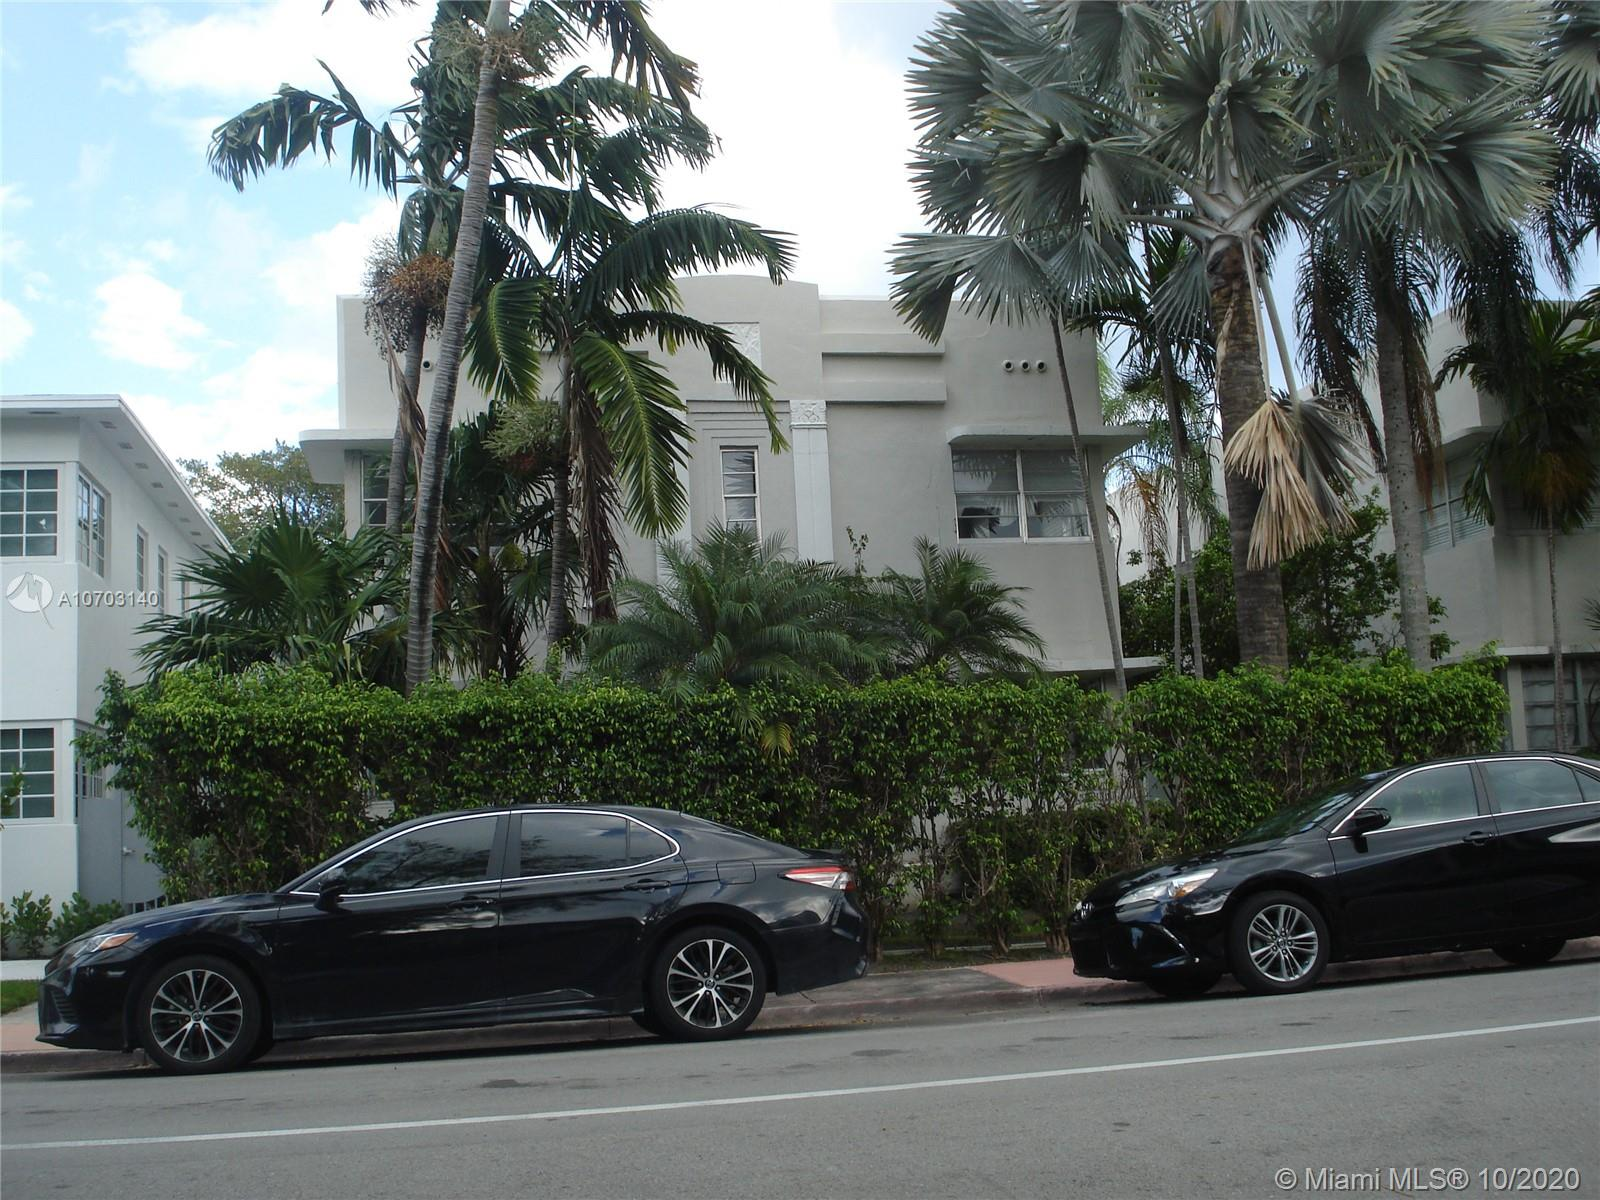 1559 Meridian Ave # 208, Miami Beach, Florida 33139, 1 Bedroom Bedrooms, ,1 BathroomBathrooms,Residential,For Sale,1559 Meridian Ave # 208,A10703140